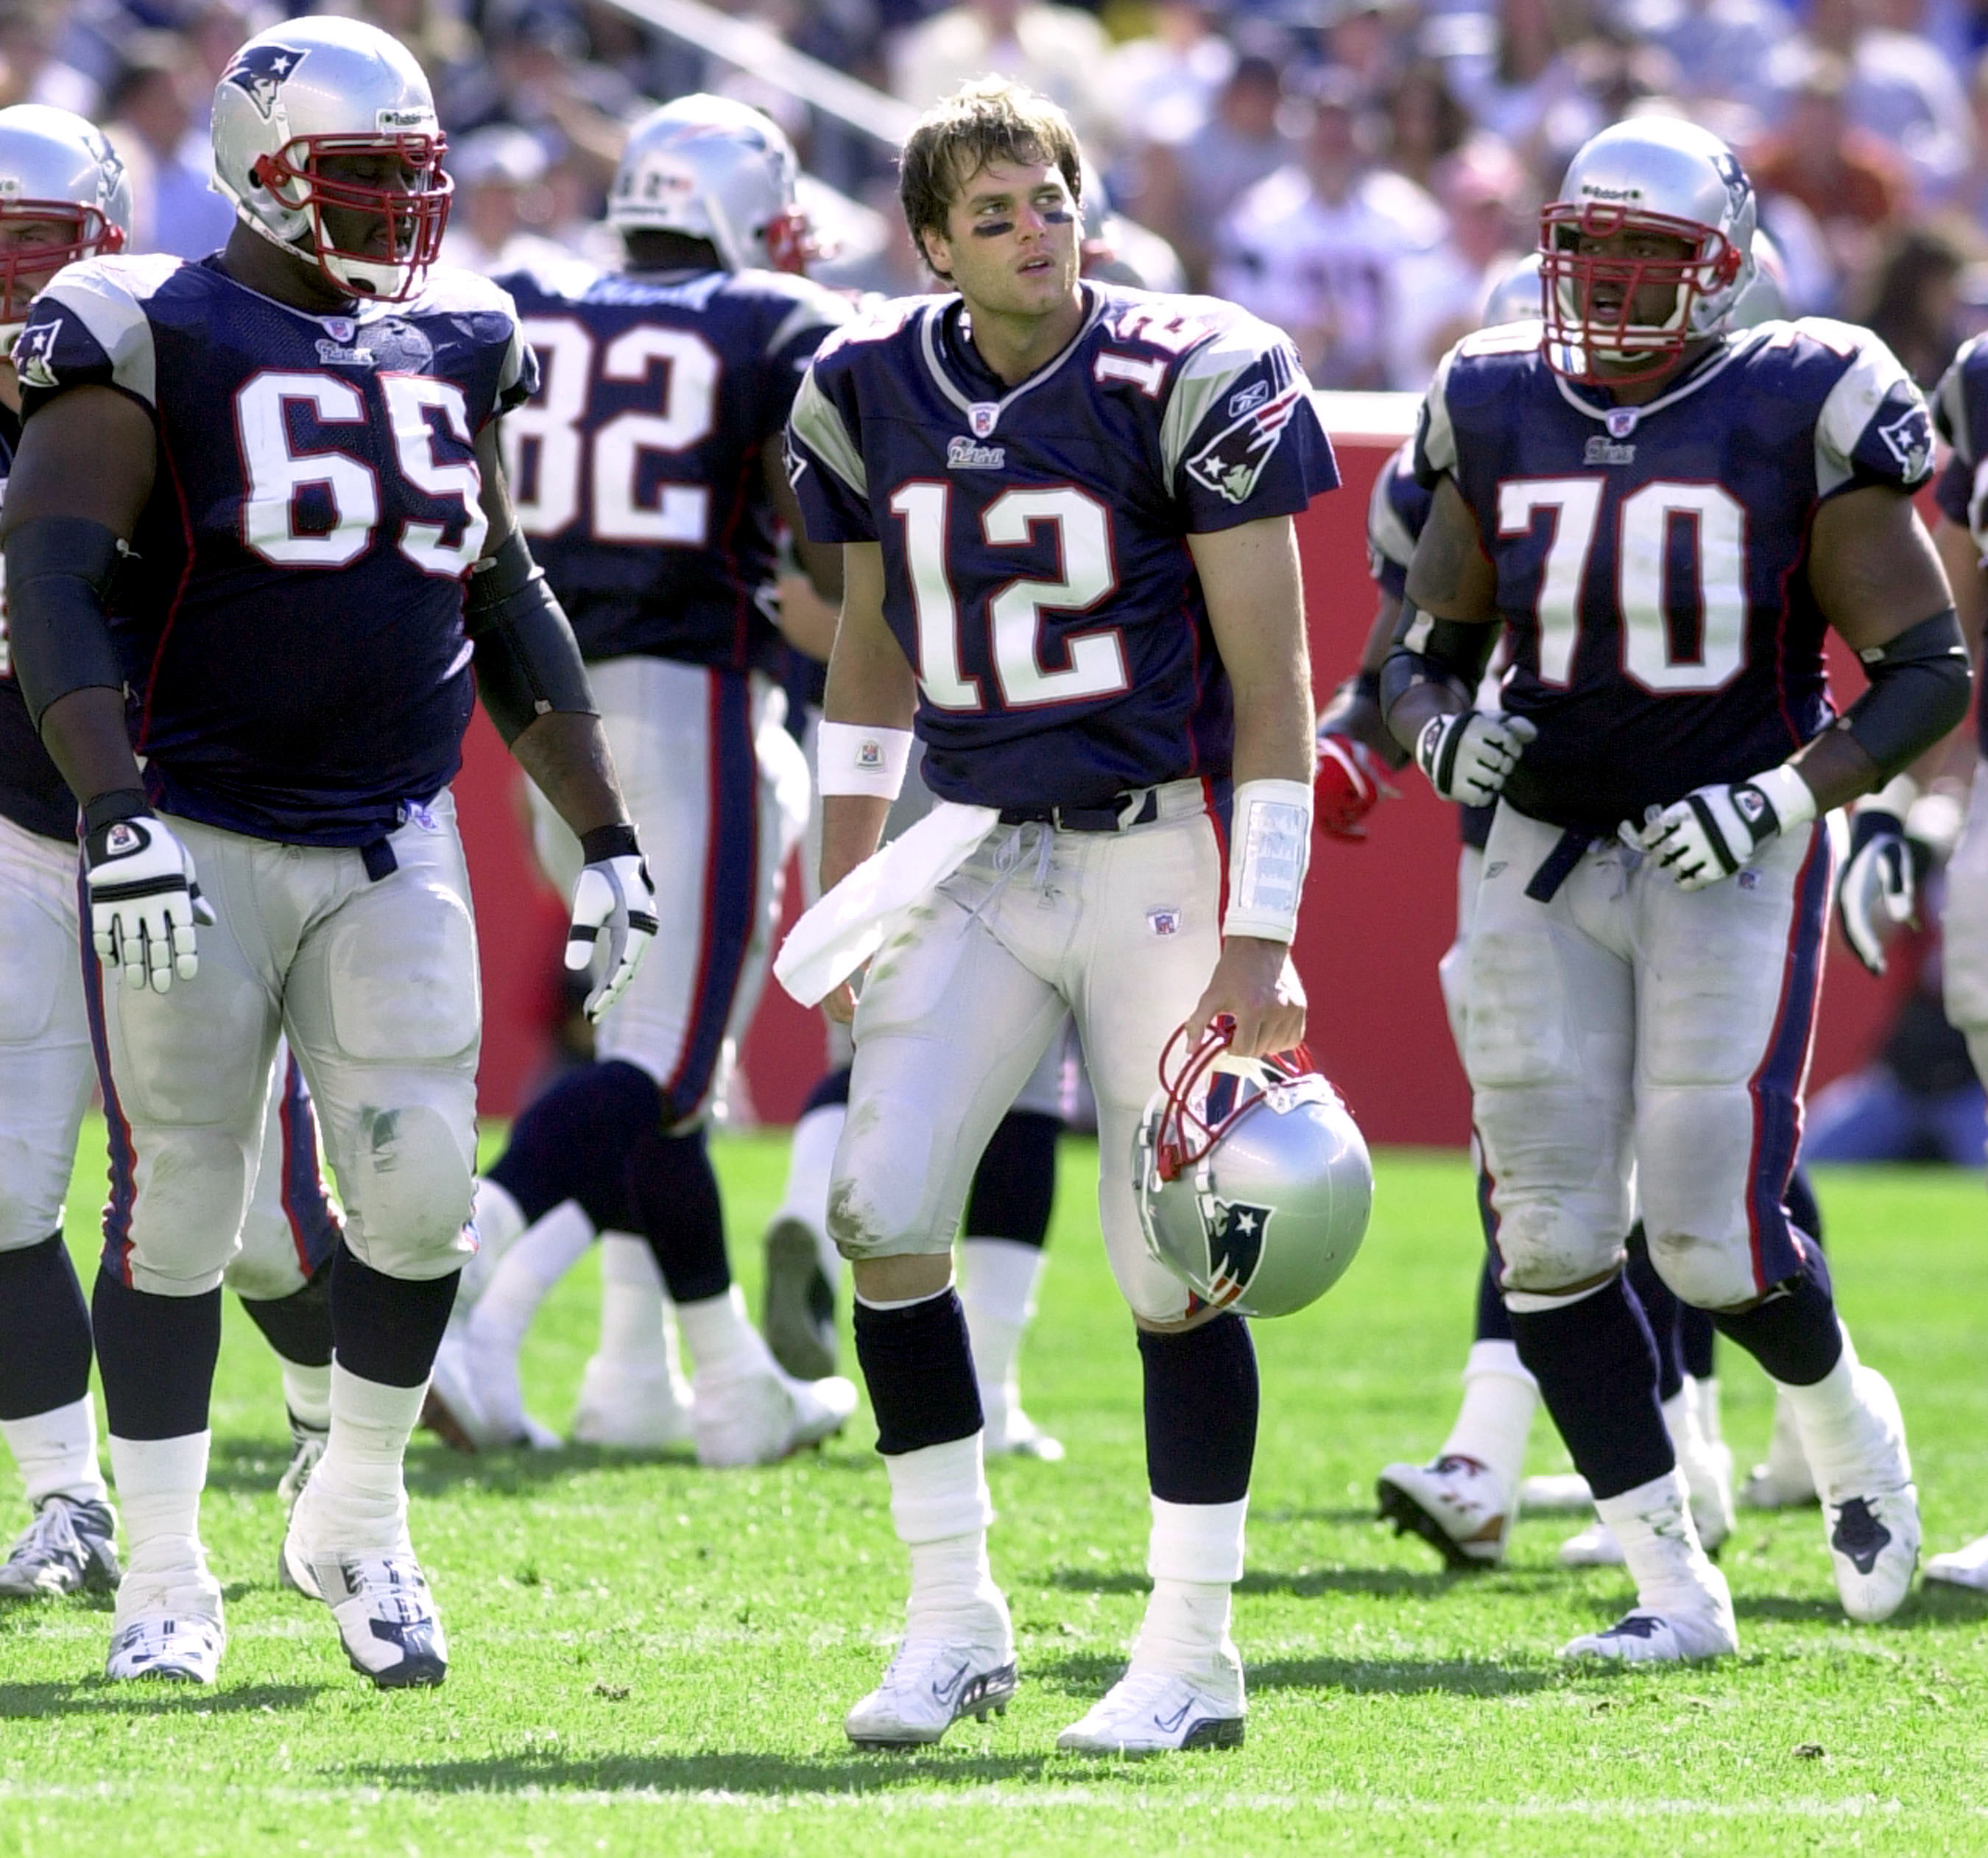 FOXBORO, MA - SEPTEMBER 21:  Quarterback Tom Brady #12 of the New England Patriots reacts to being sacked by the New York Jets during game action at Gillette Stadium September 21, 2003 in Foxboro, Massachusetts. This is the New England Patriots' home open